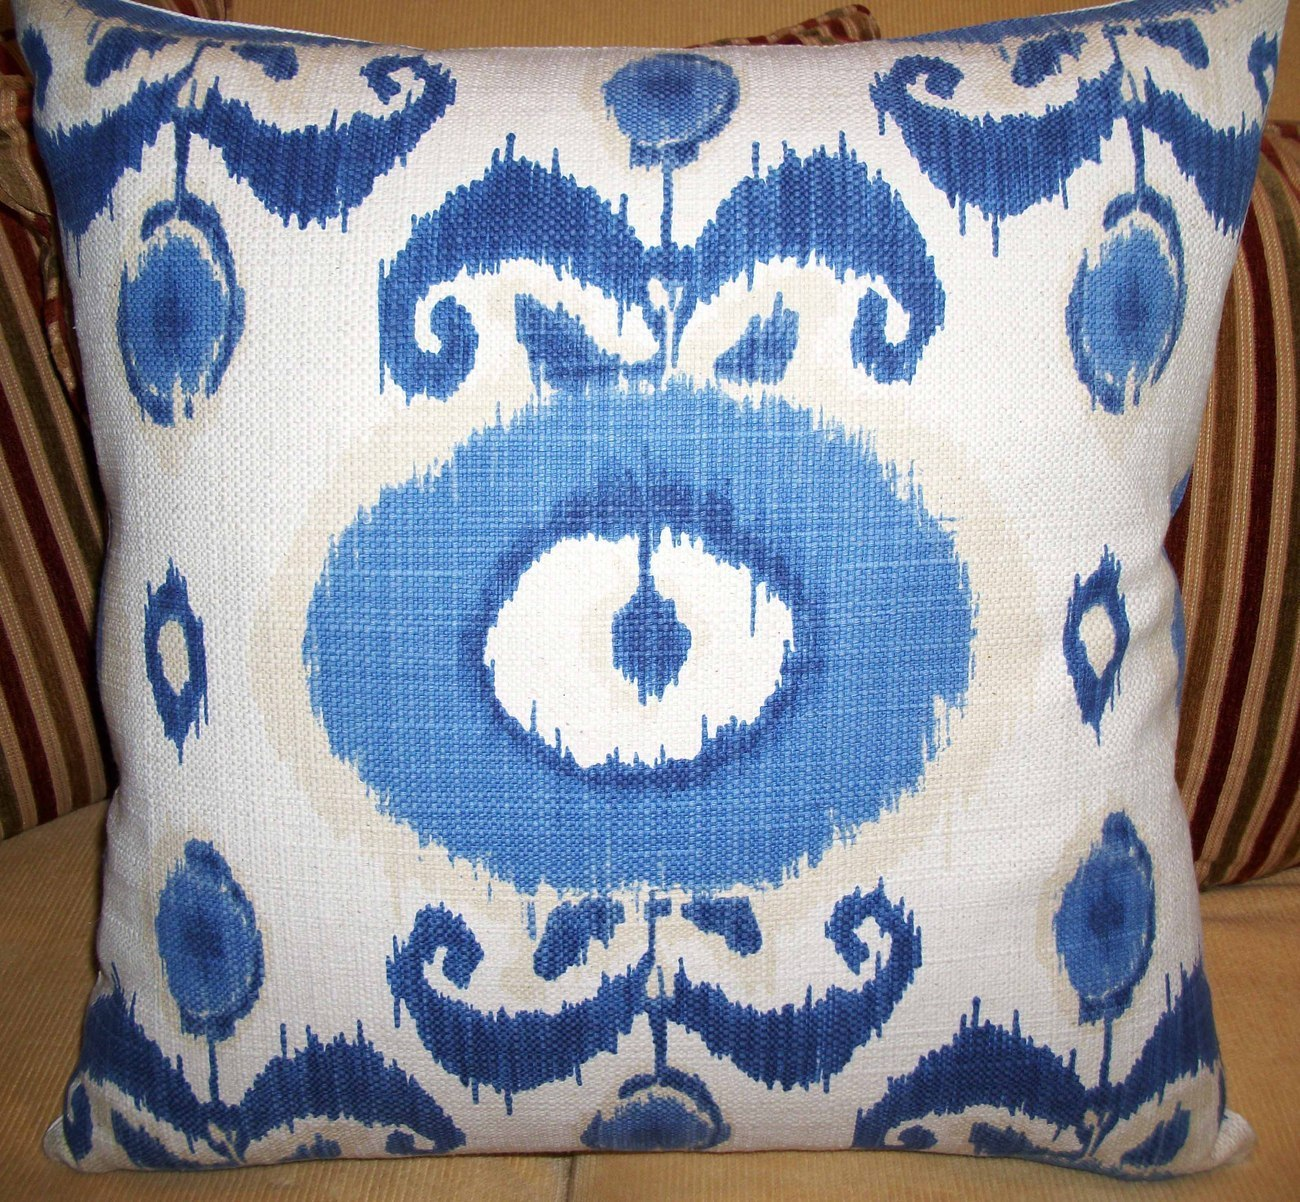 HIGH END IKAT ACCENT PILLOW